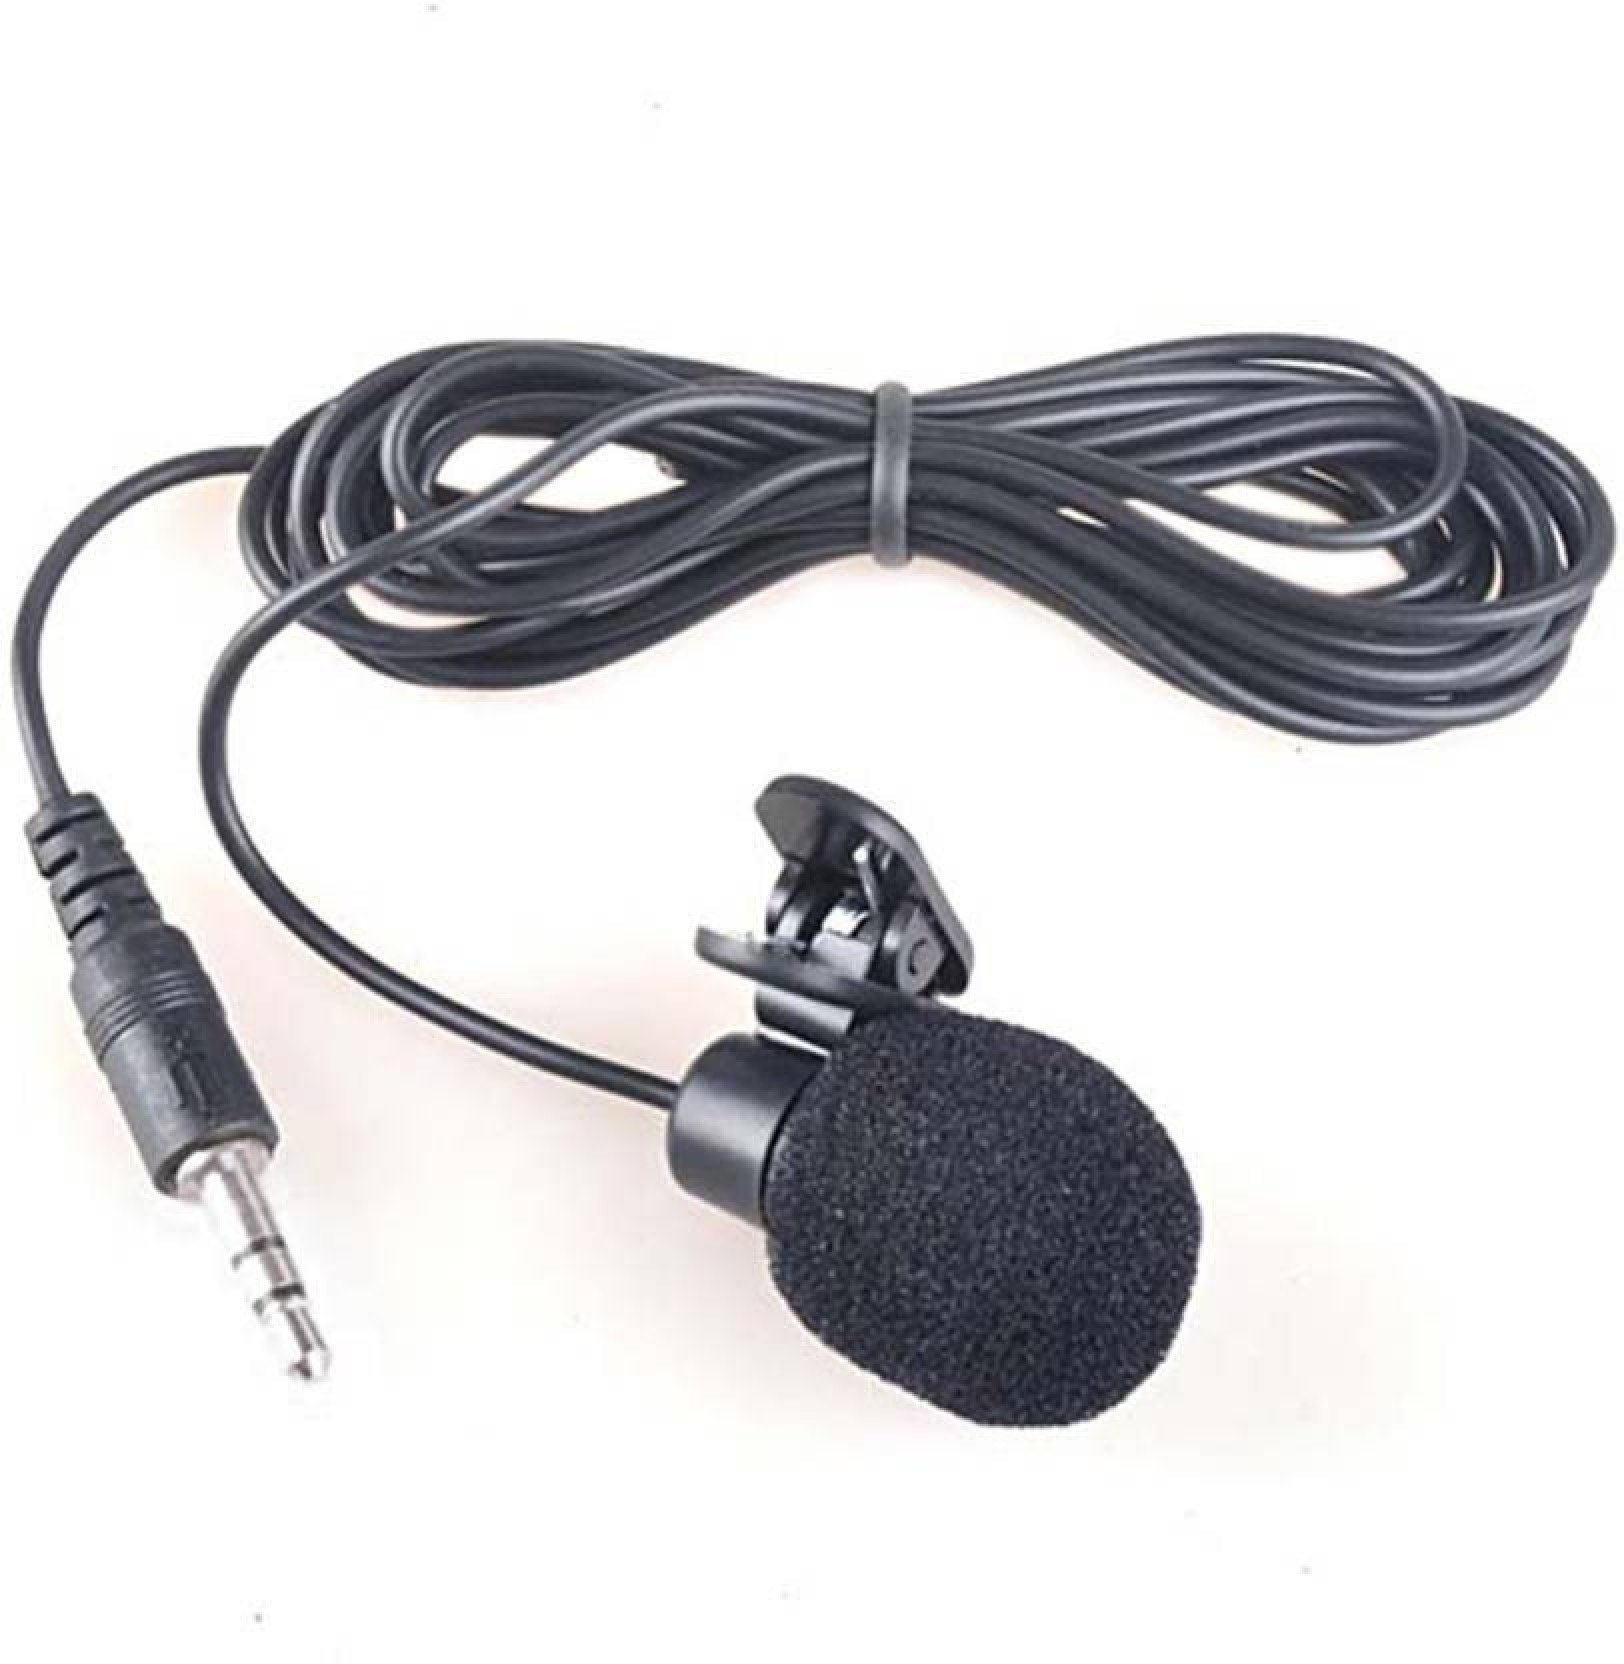 Avyana 35mm Clip Microphone For Youtube By Techlicious Collar Electret Condenser Wiring Add To Cart